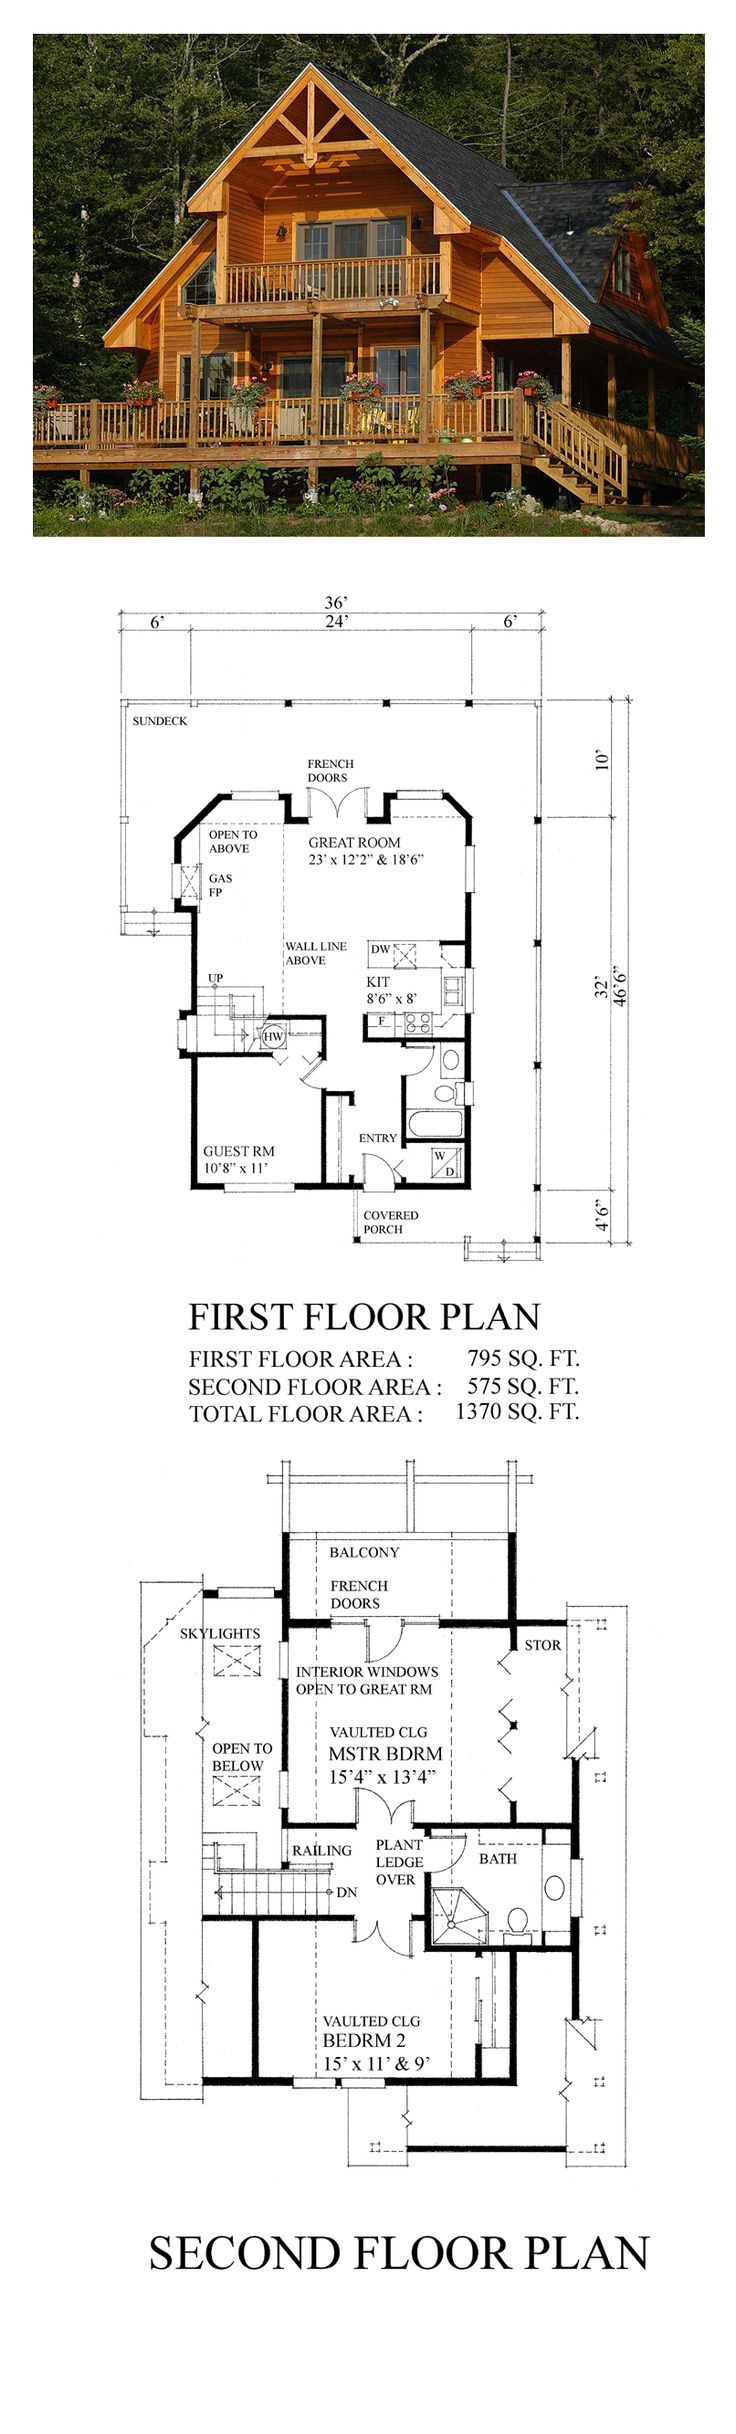 17 best images about lakefront home plans on pinterest for Lakefront home floor plans